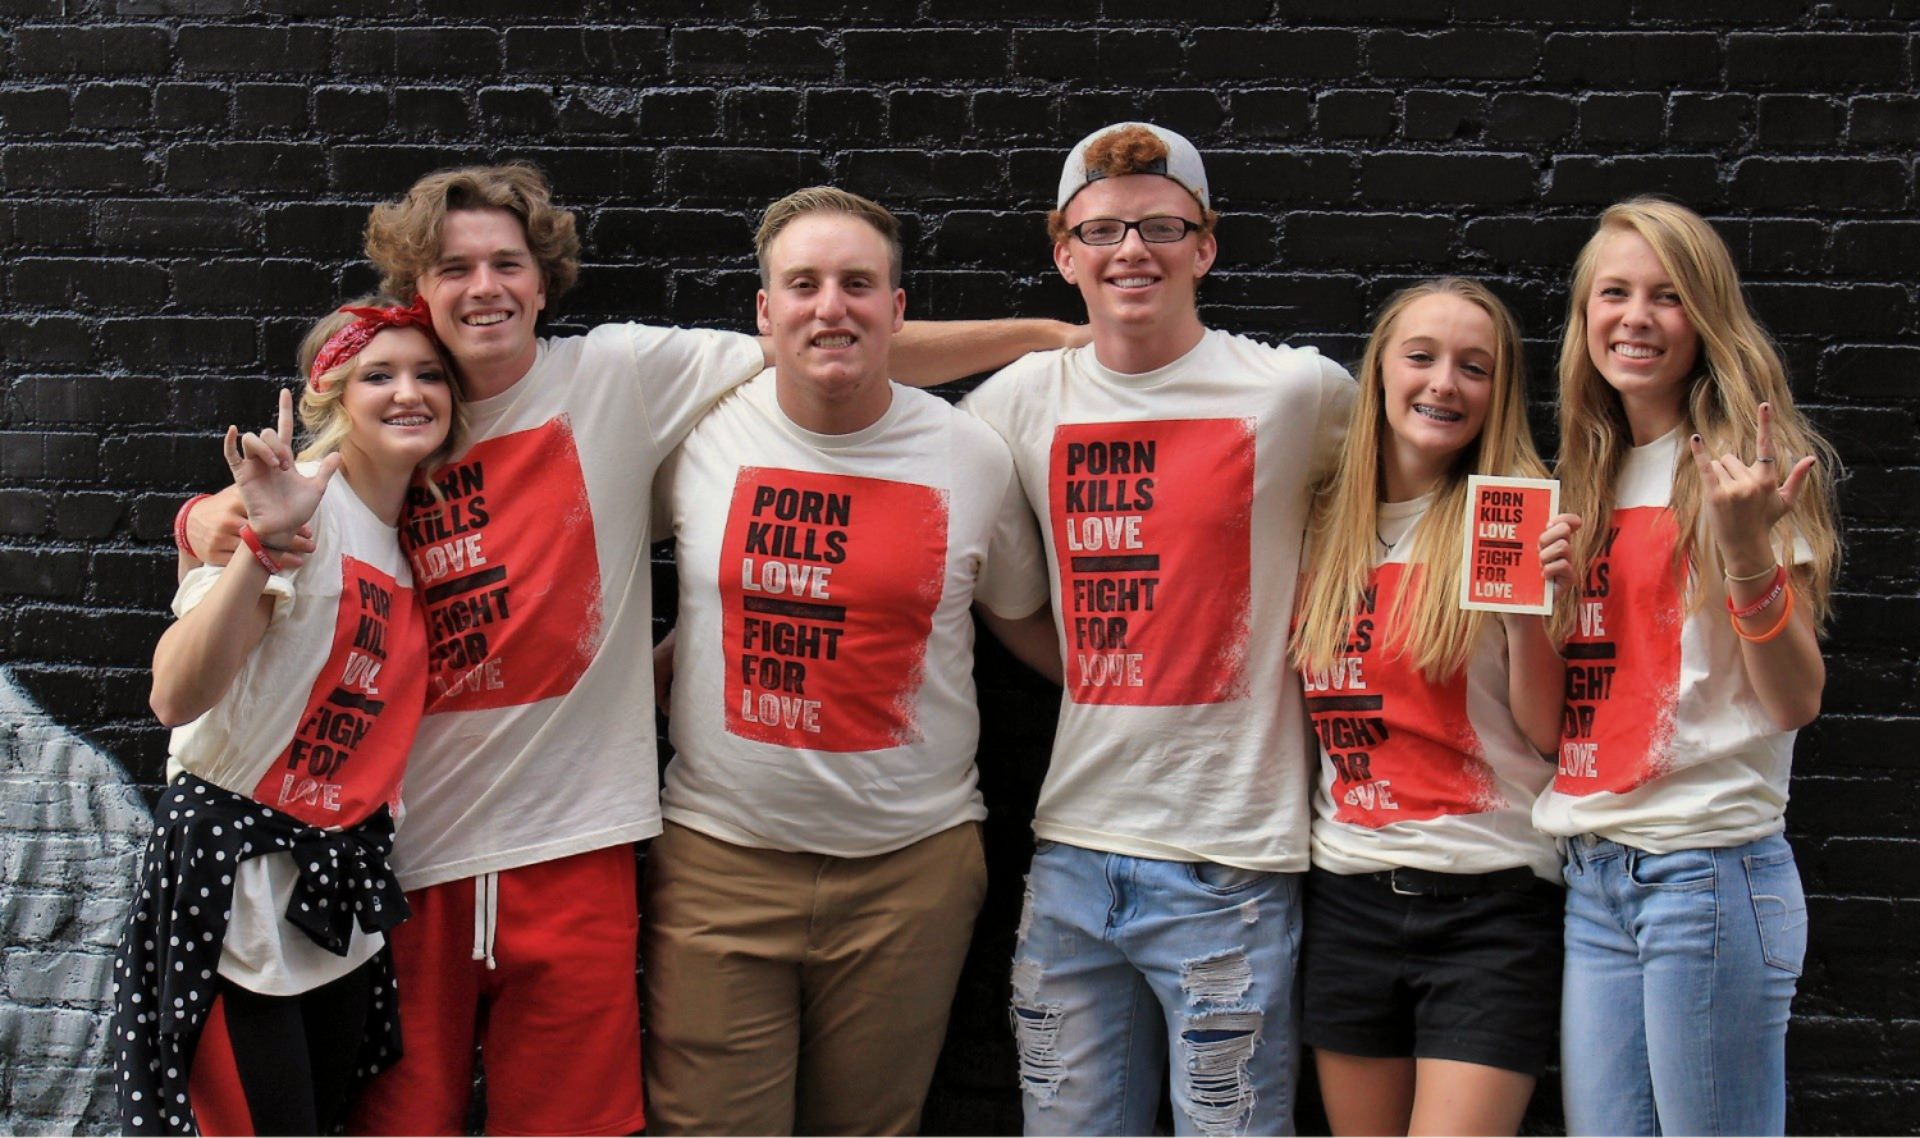 How To Take The Movement for Love To Your Streets In 4 Steps (PHOTOS)